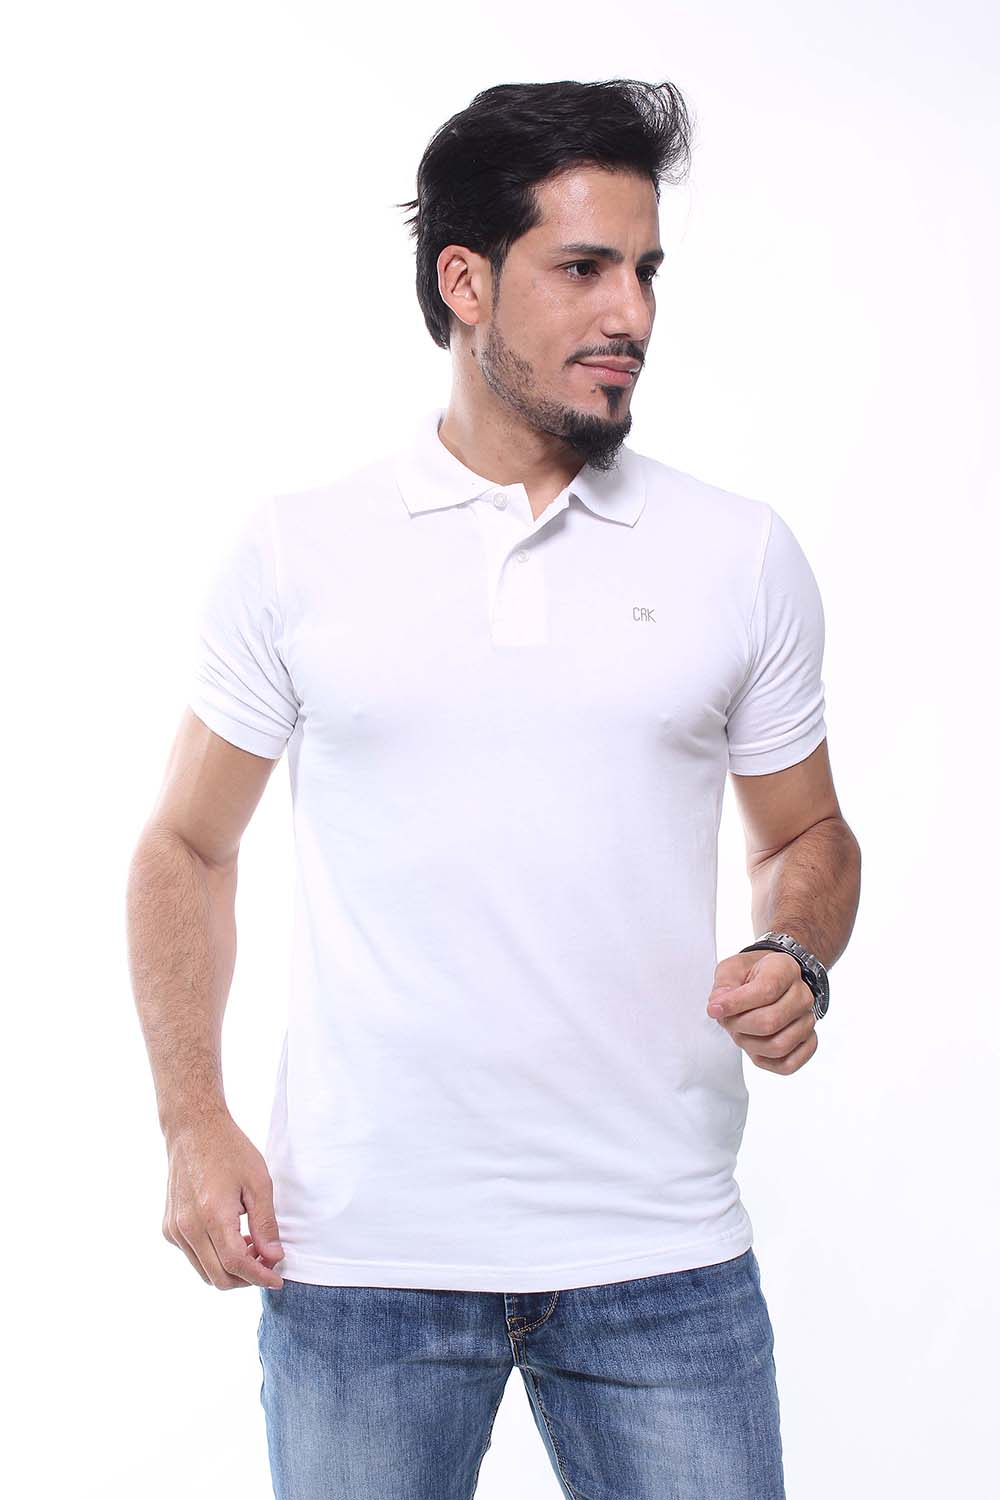 Camisa Gola Polo Lisa Crocker - 45363